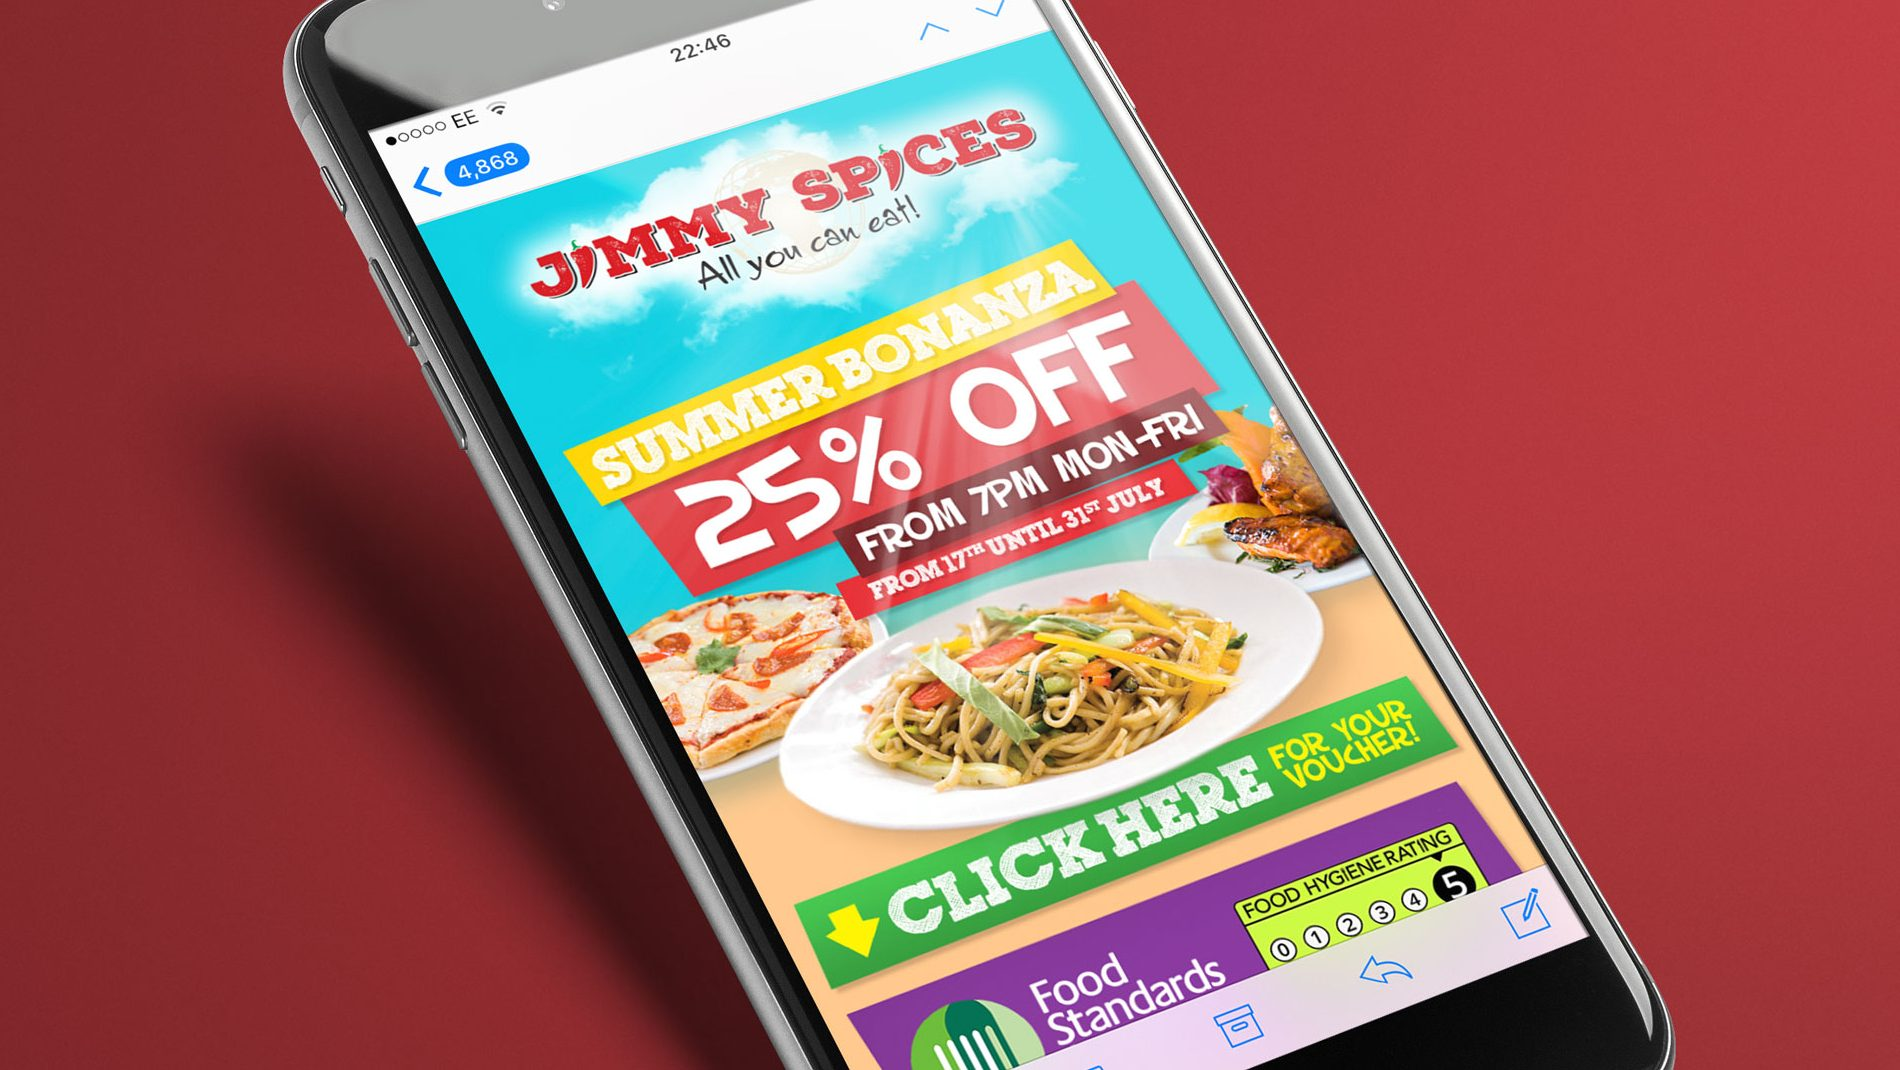 iPhone showing responsive email marketing campaign for Birmingham restaurant Jimmy Spices